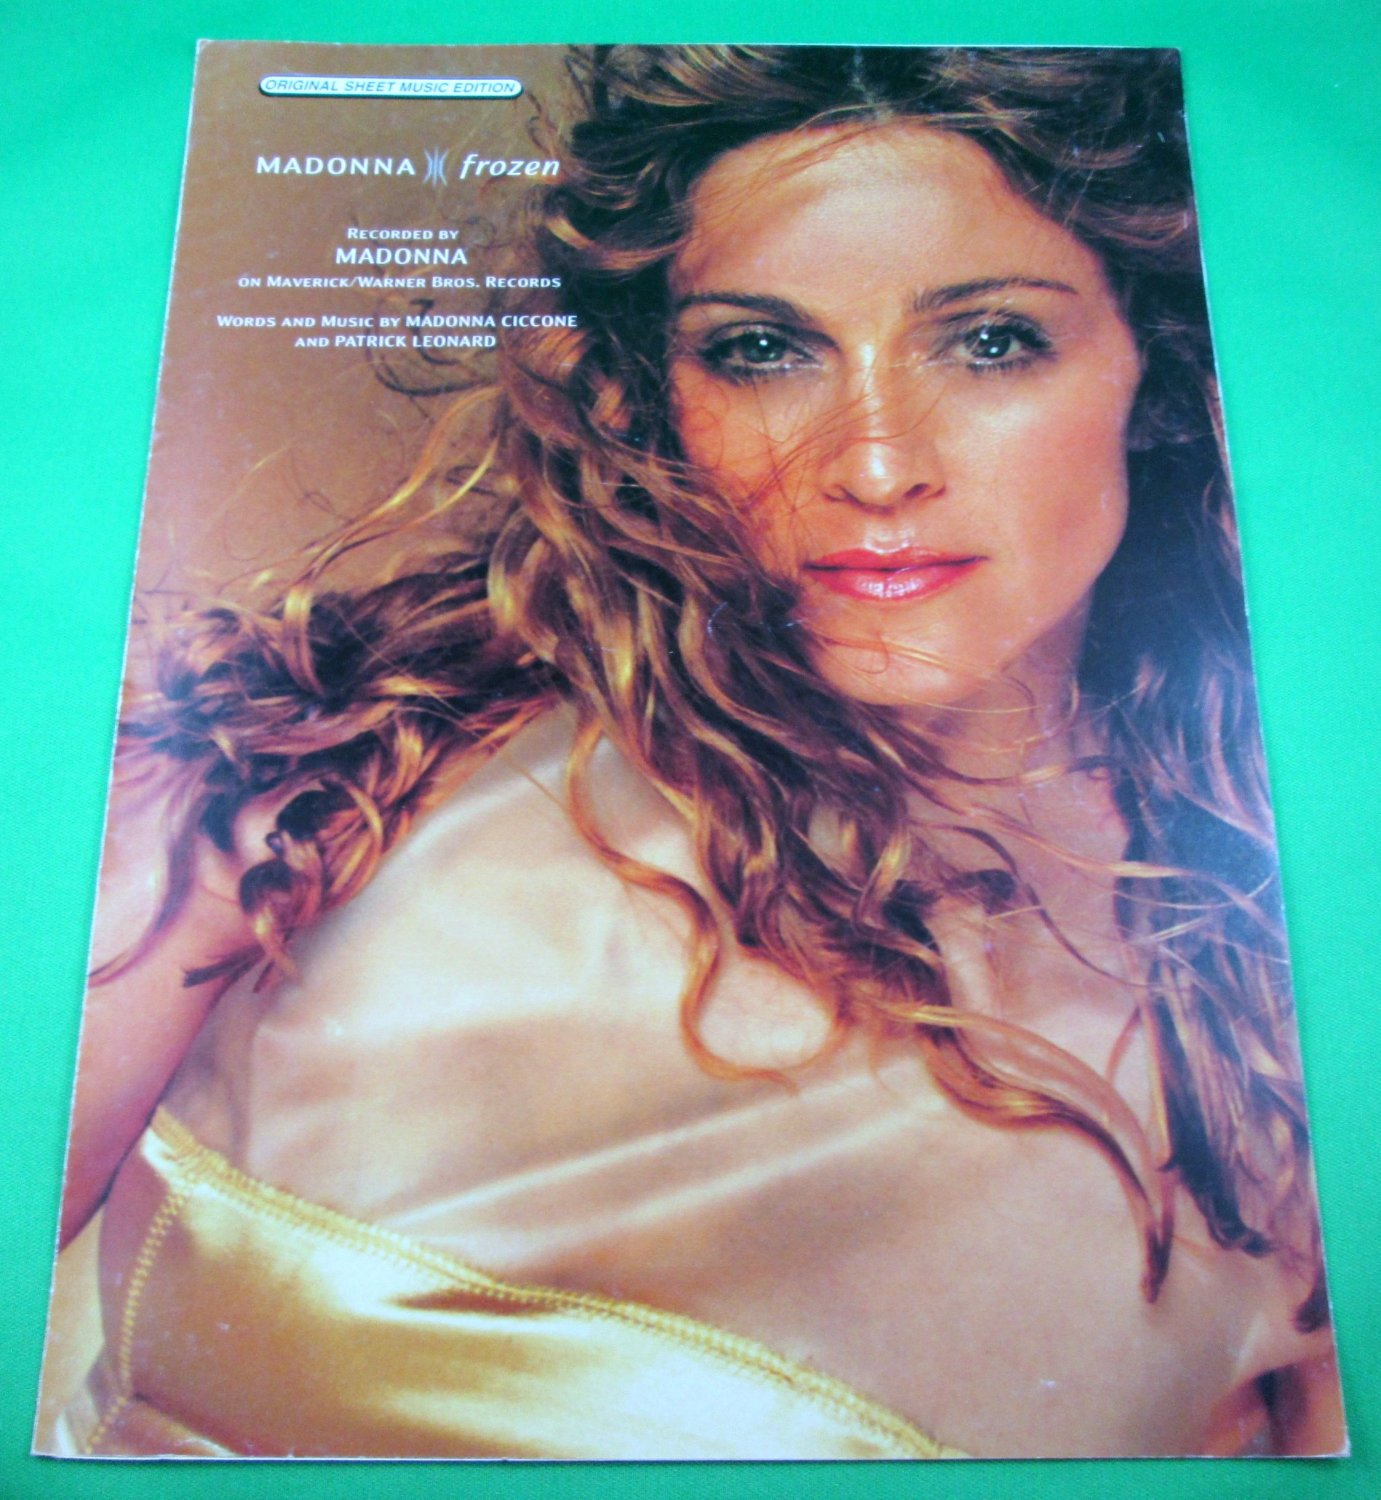 FROZEN Original Sheet Music Edition MADONNA COVER PHOTO © 1998